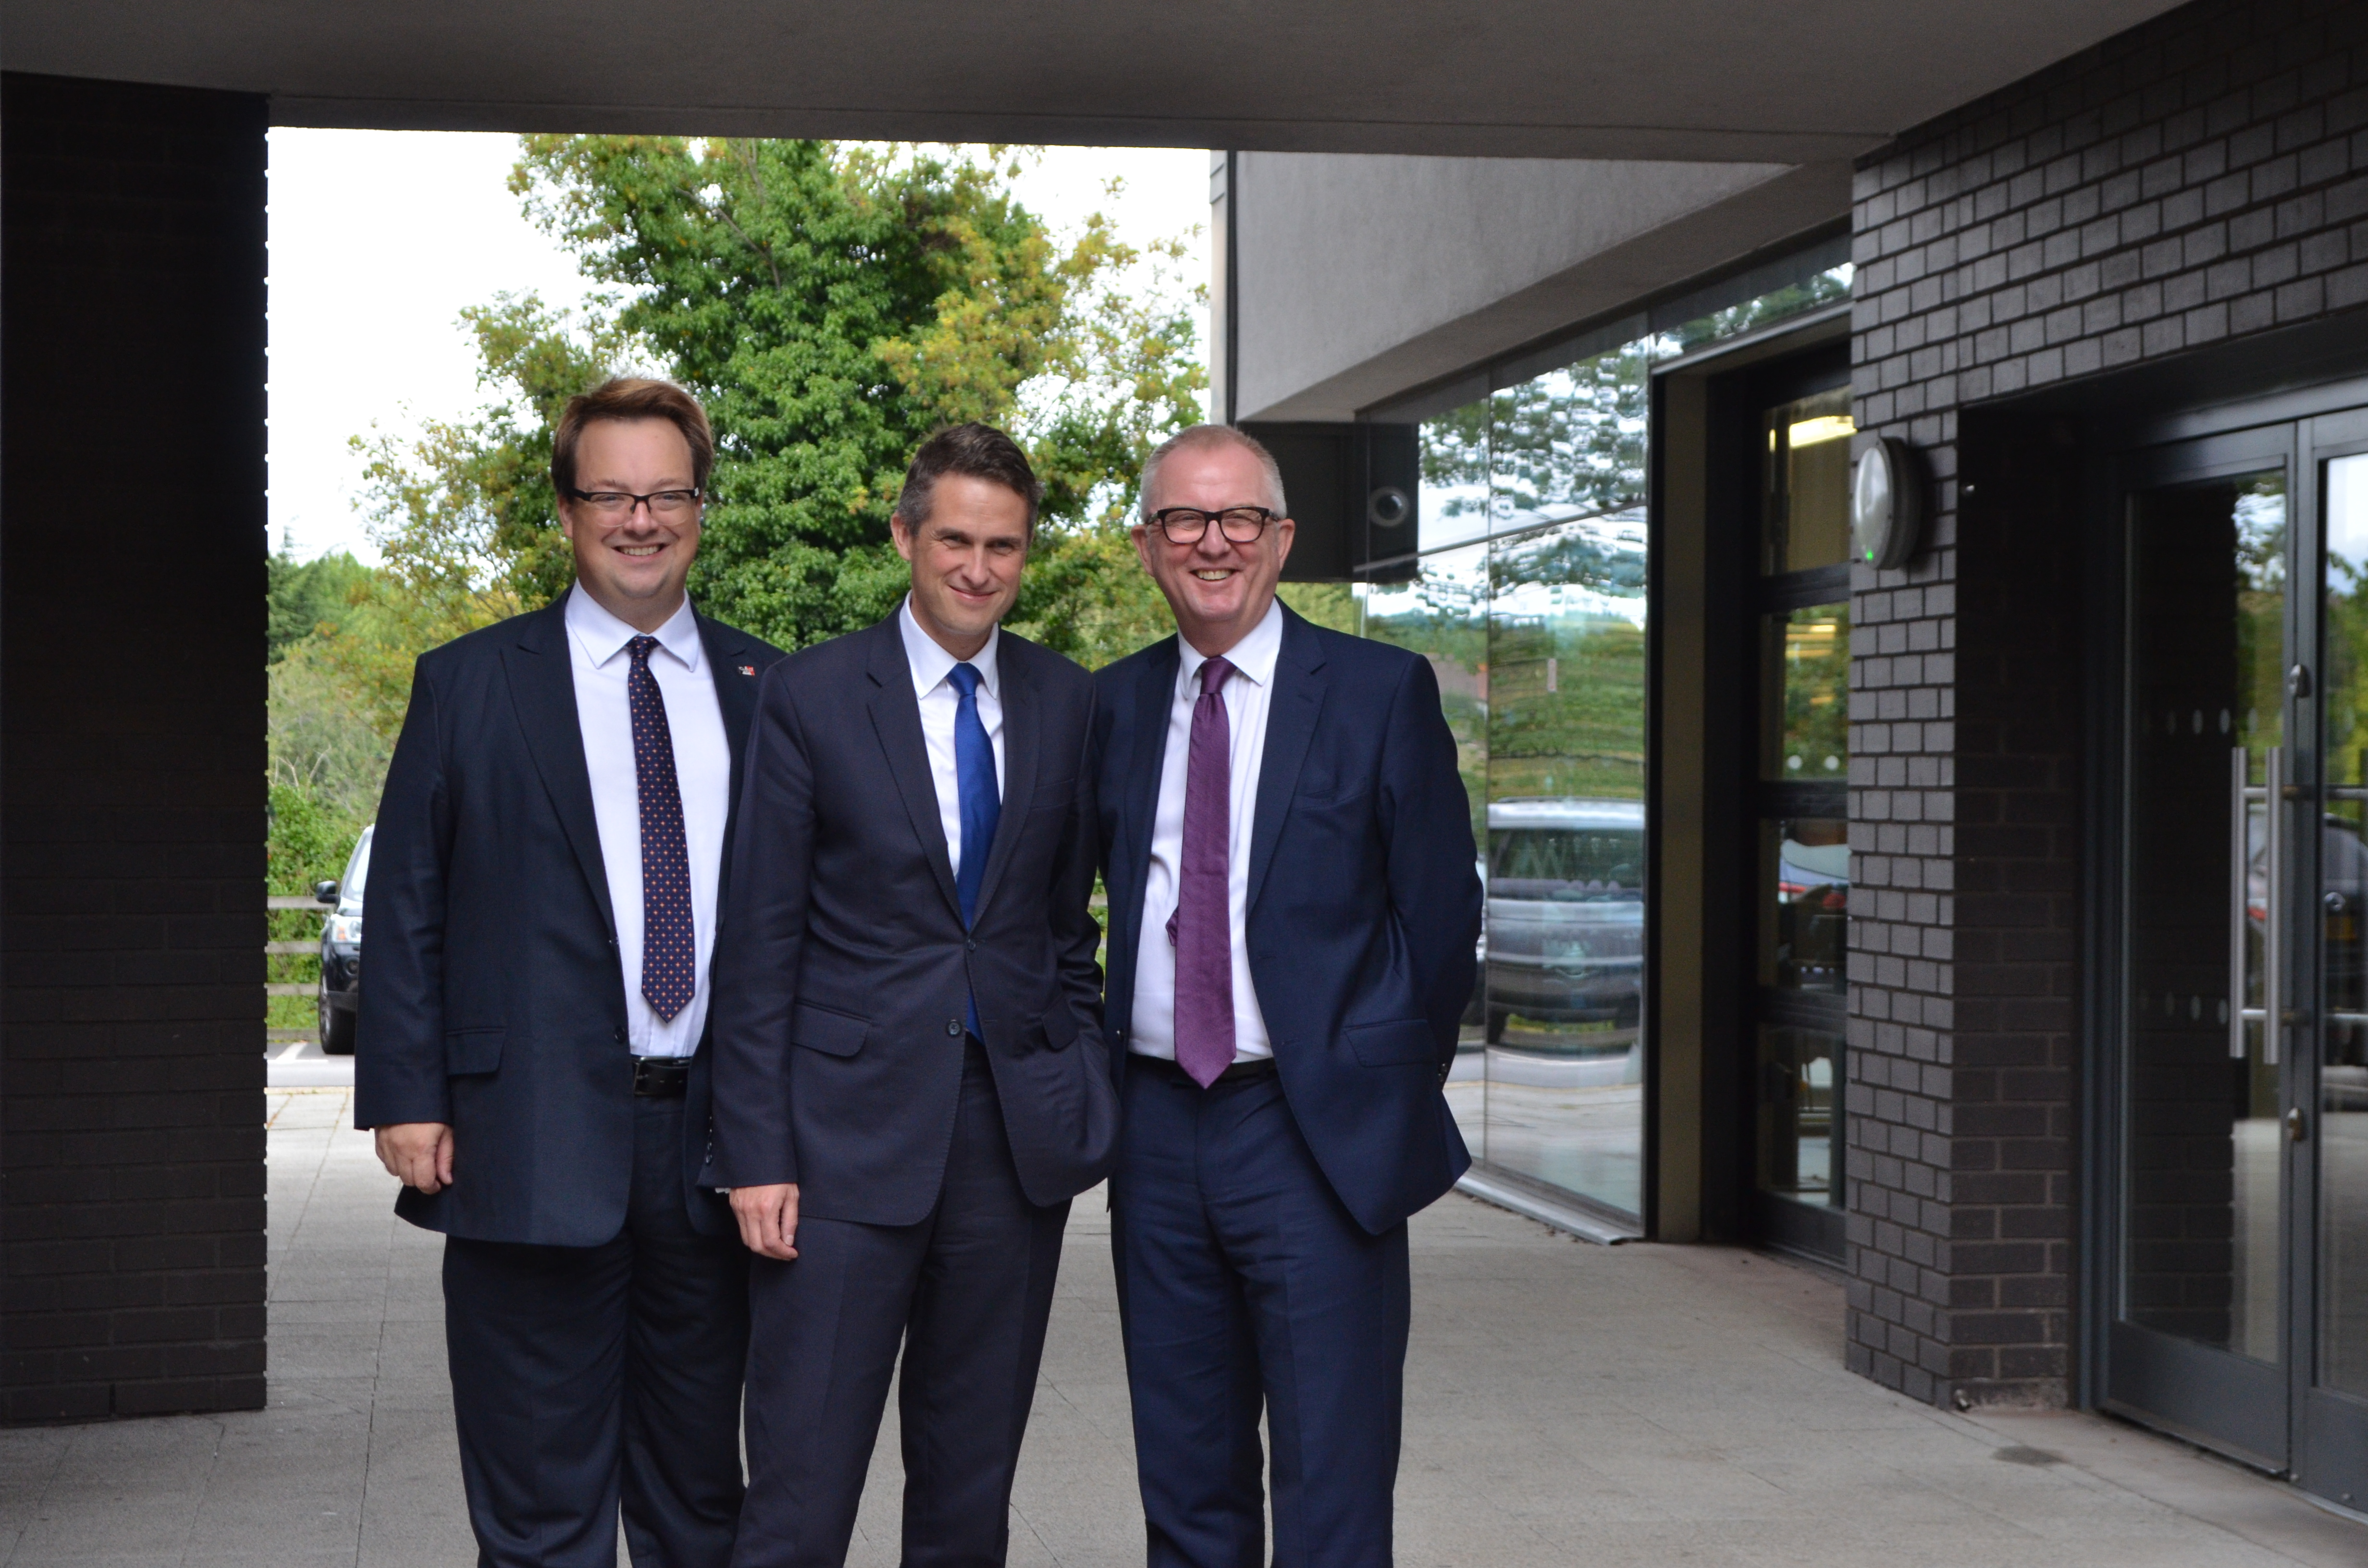 Gavin Williamson was welcomed to Dudley College by Dudley MPs Mike Wood and Ian Austin